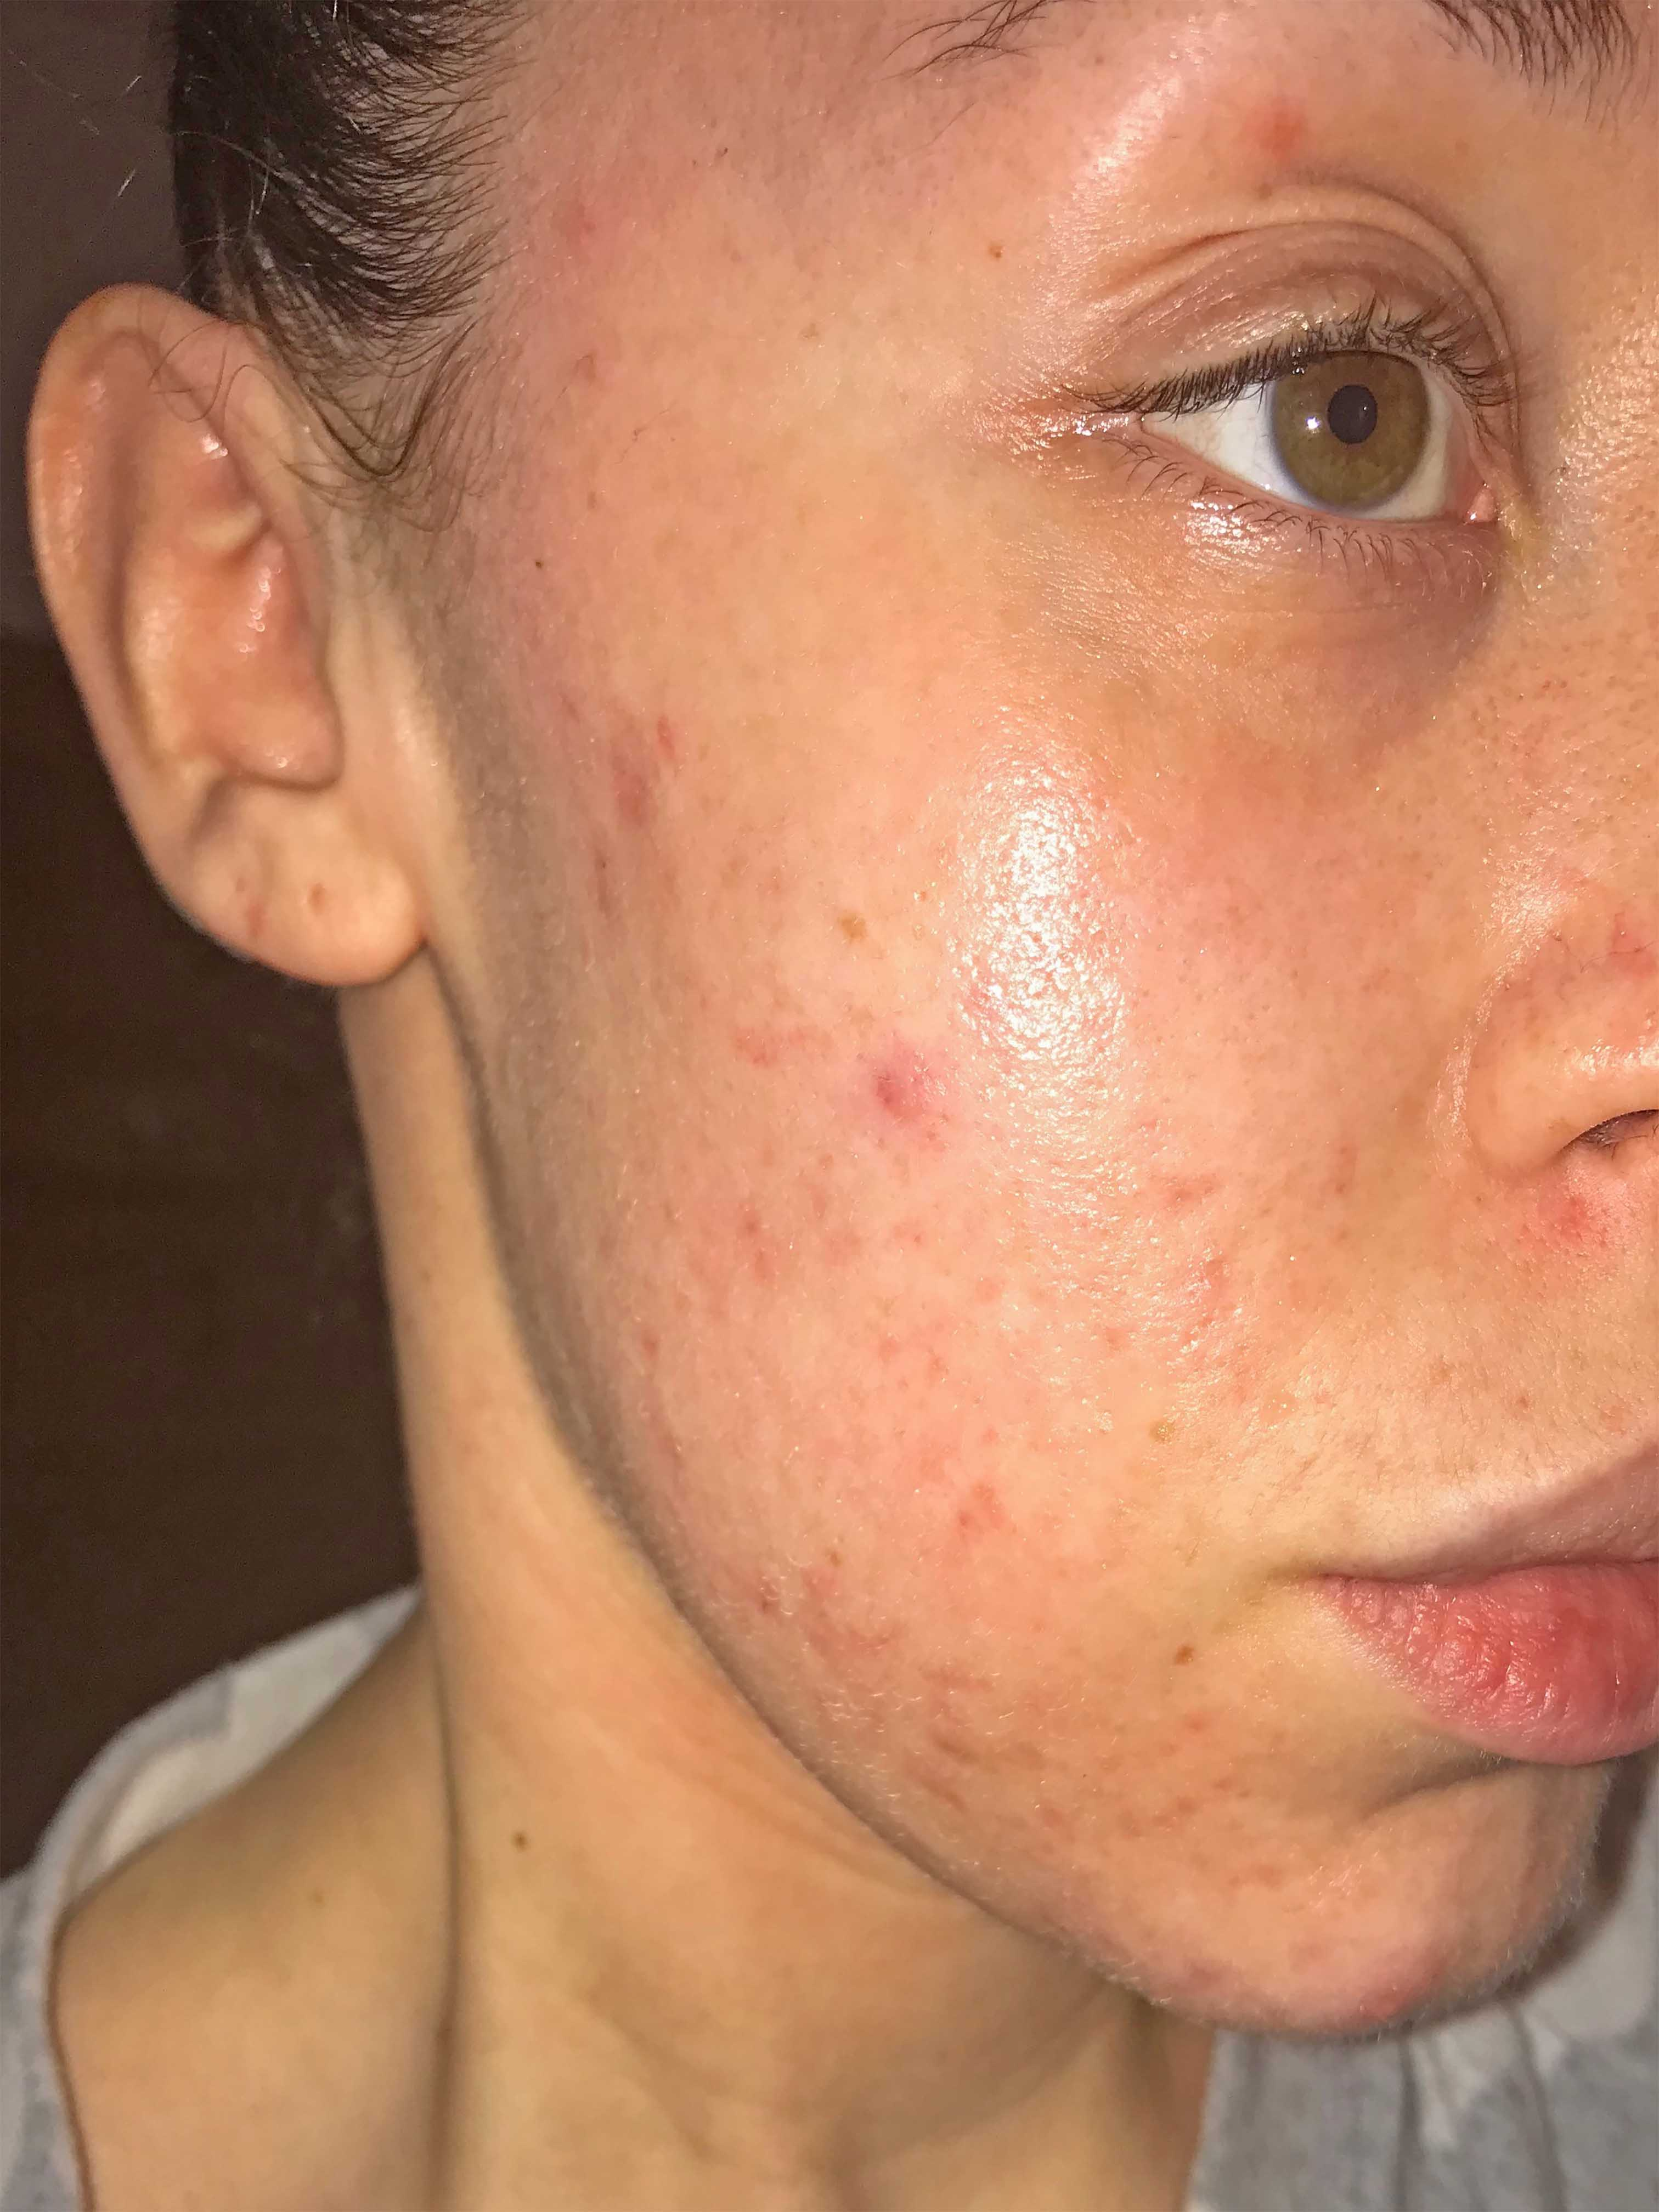 Skin after 3 acne treatments at Young LDN